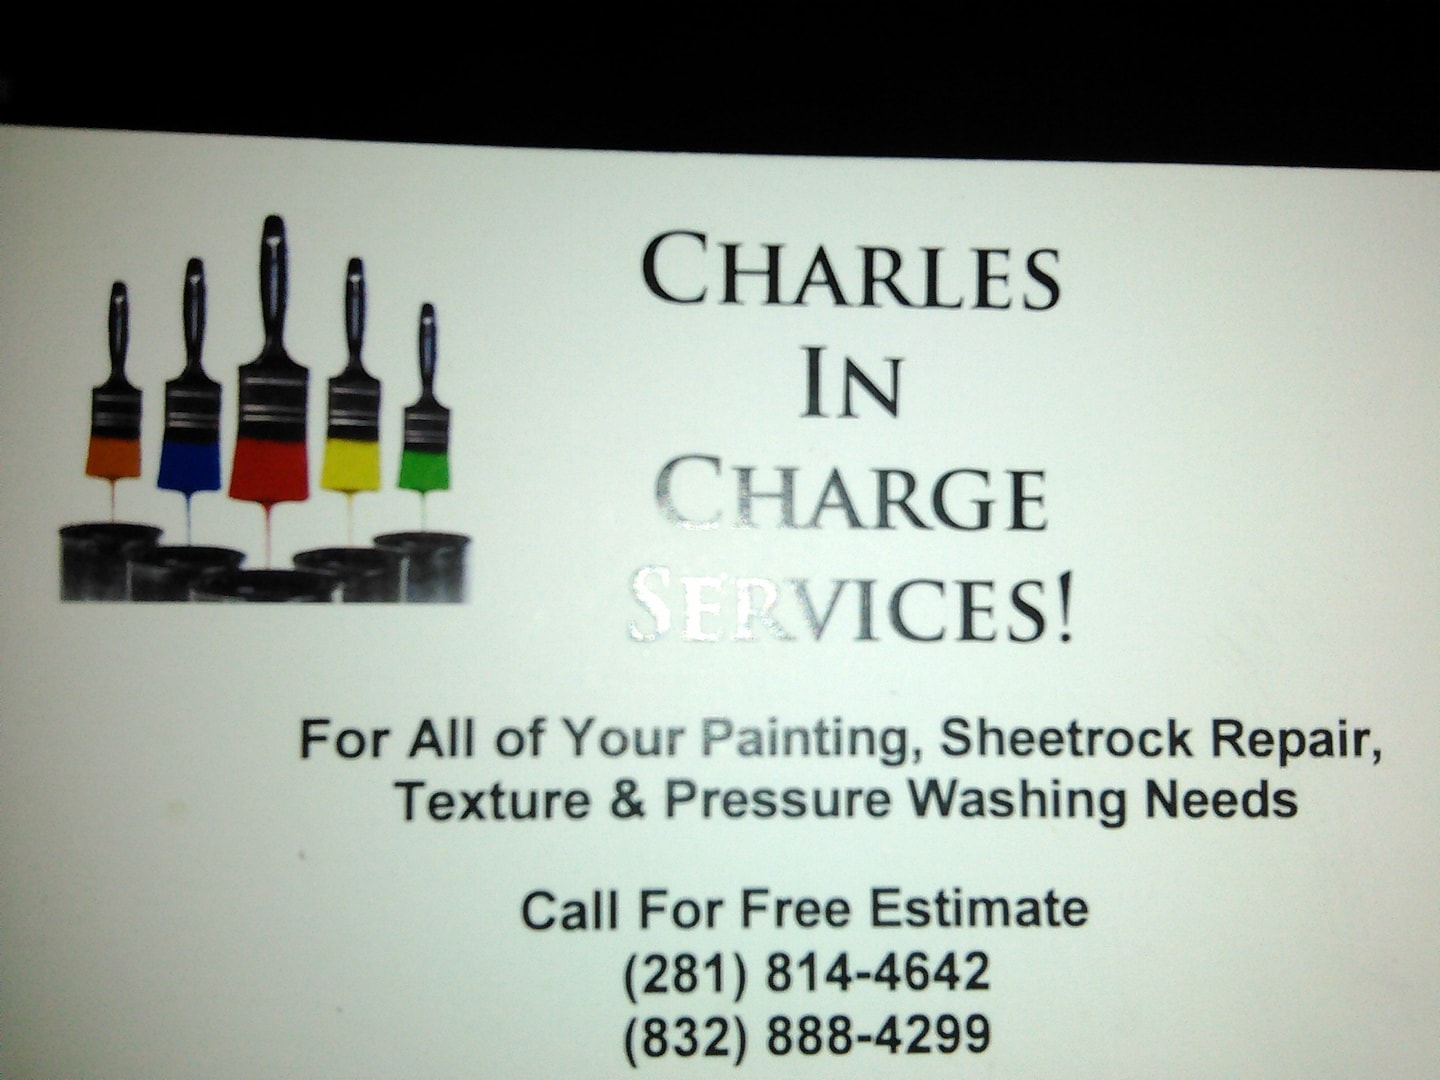 Charles in Charge Painting Services